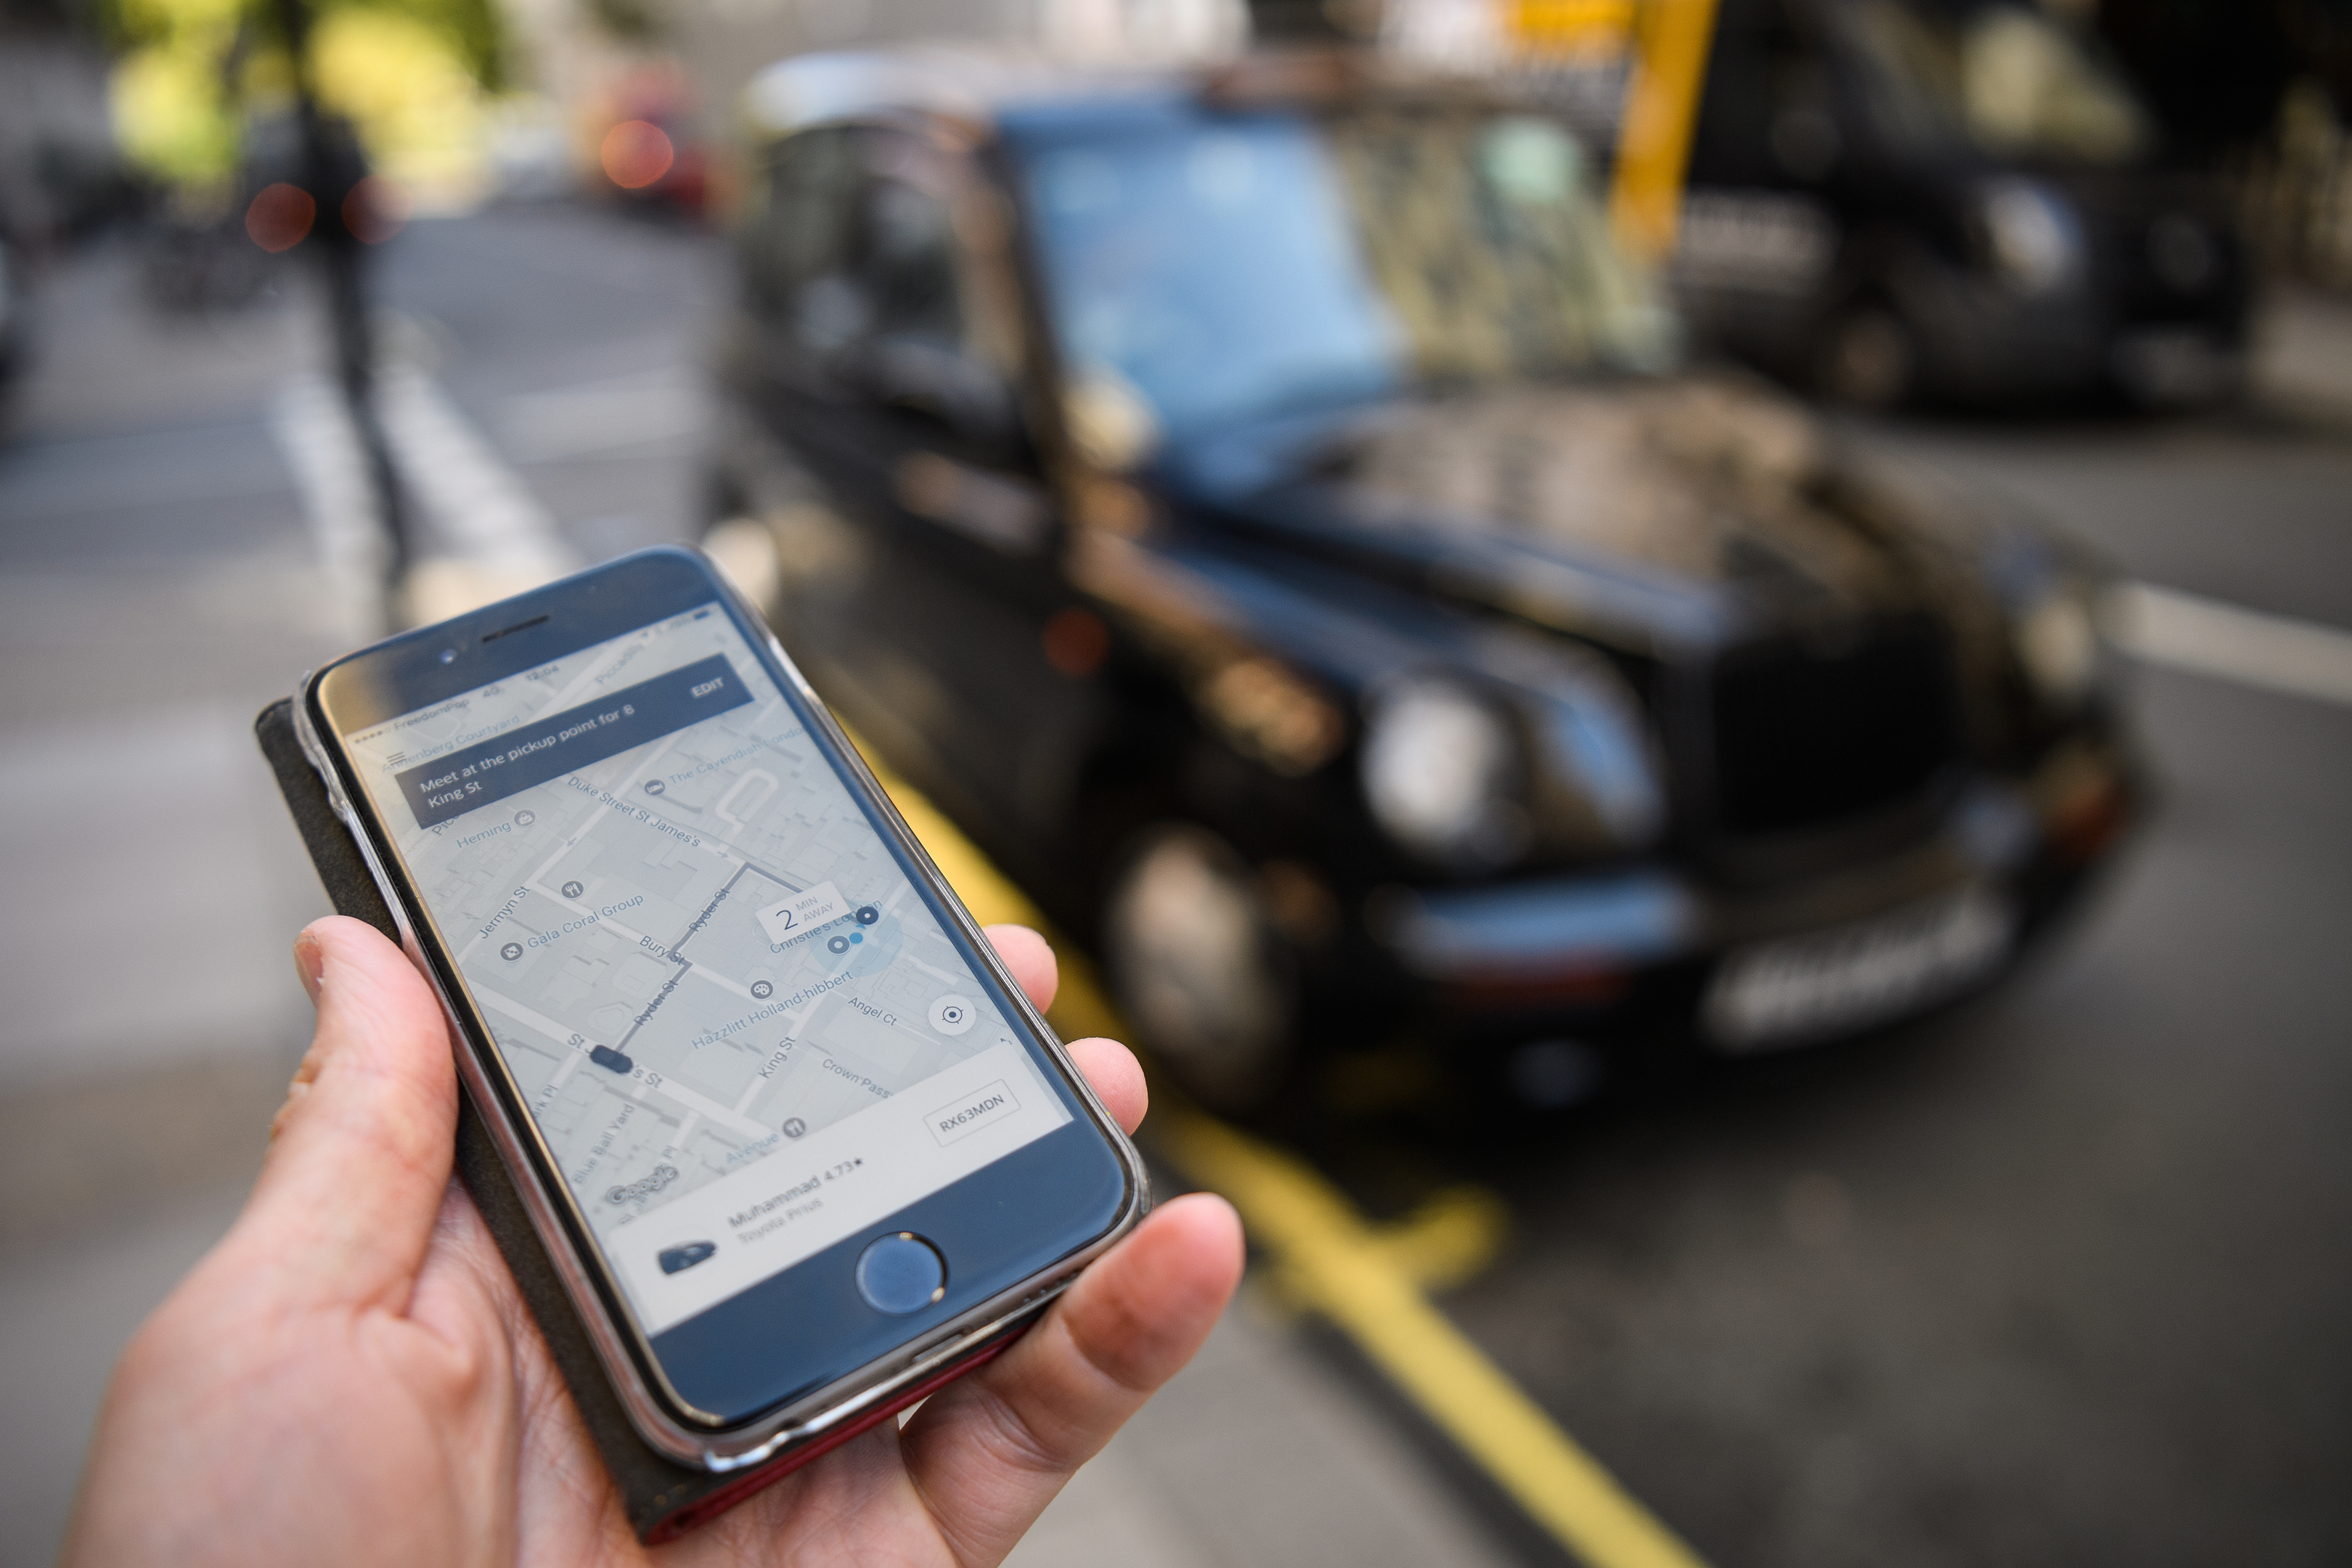 There are no plans to review Uber in Scotland after the company lost its operational license in London (Leon Neal/Getty Images)